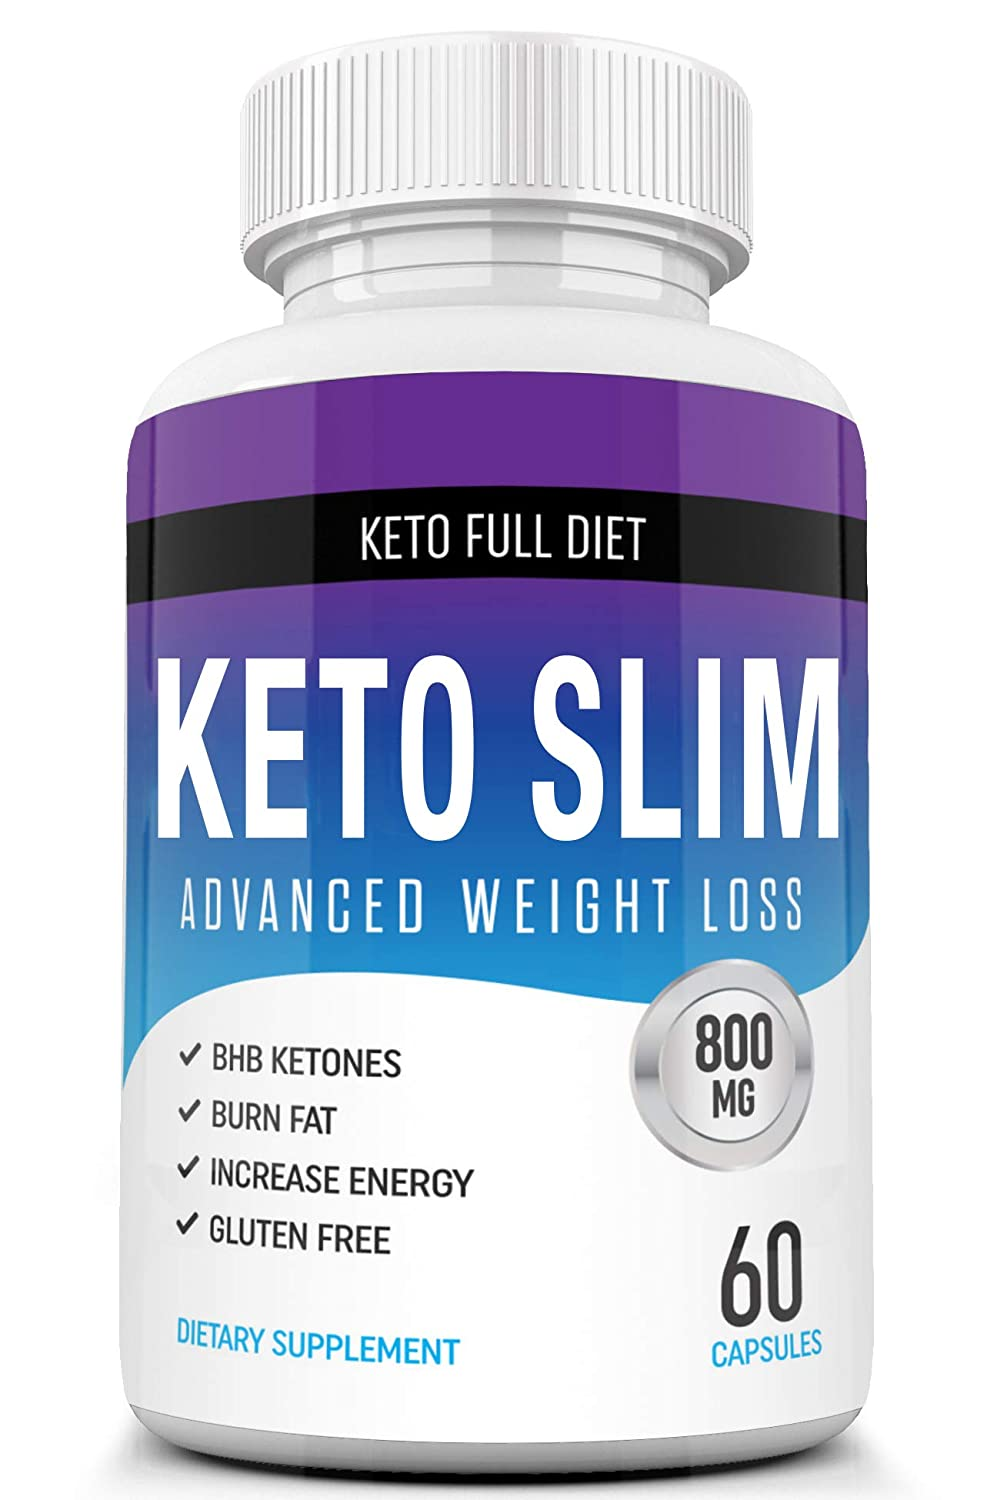 Shark Tank Episode Of Weight Loss Product